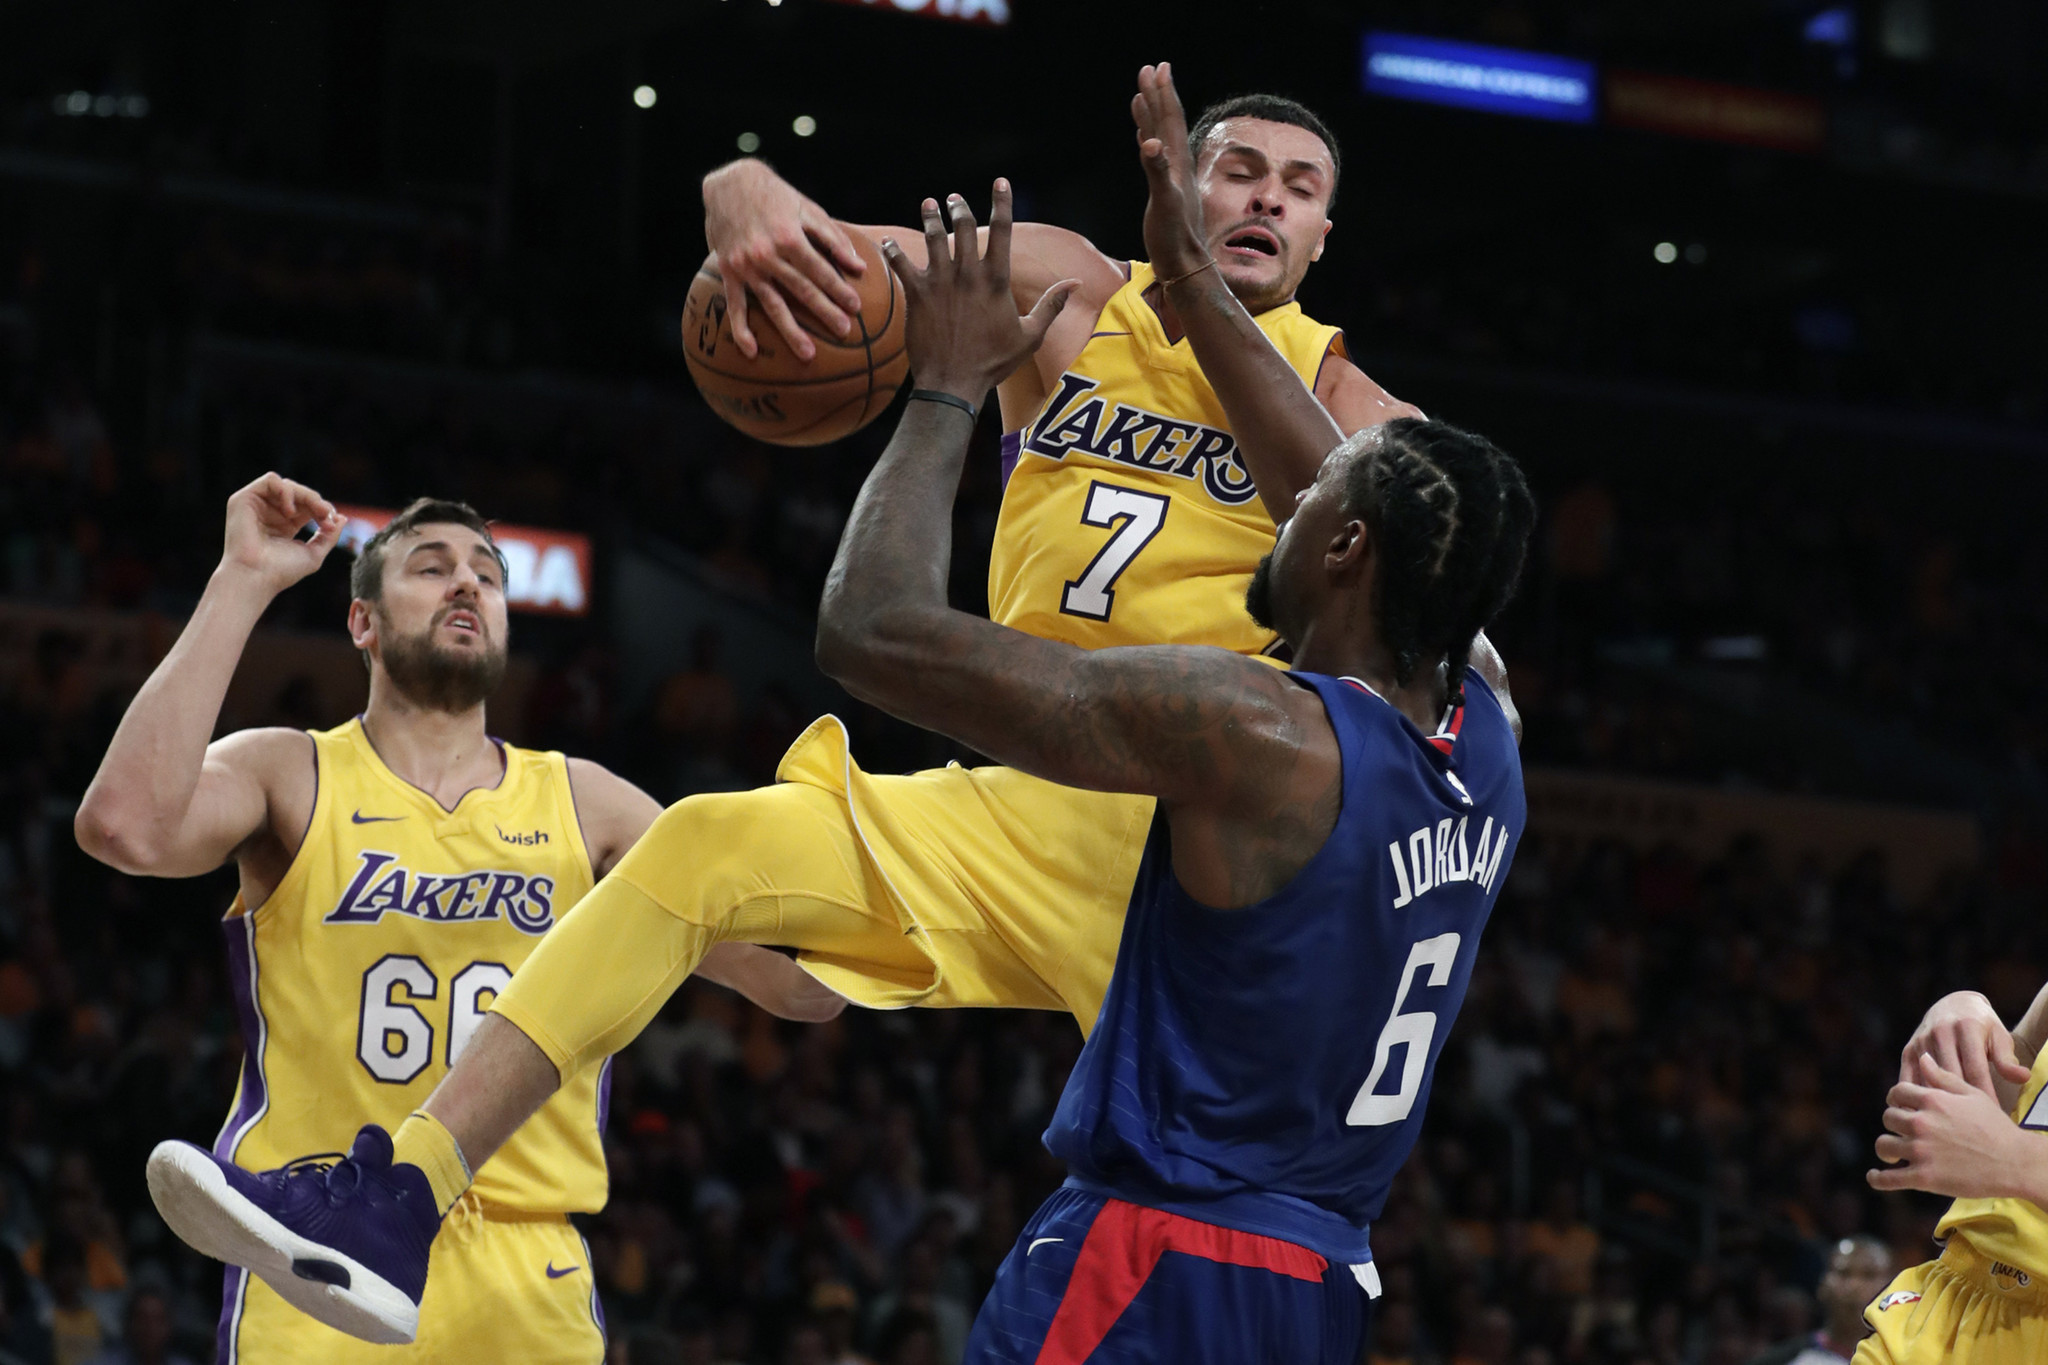 La-sp-lakers-report-20171019